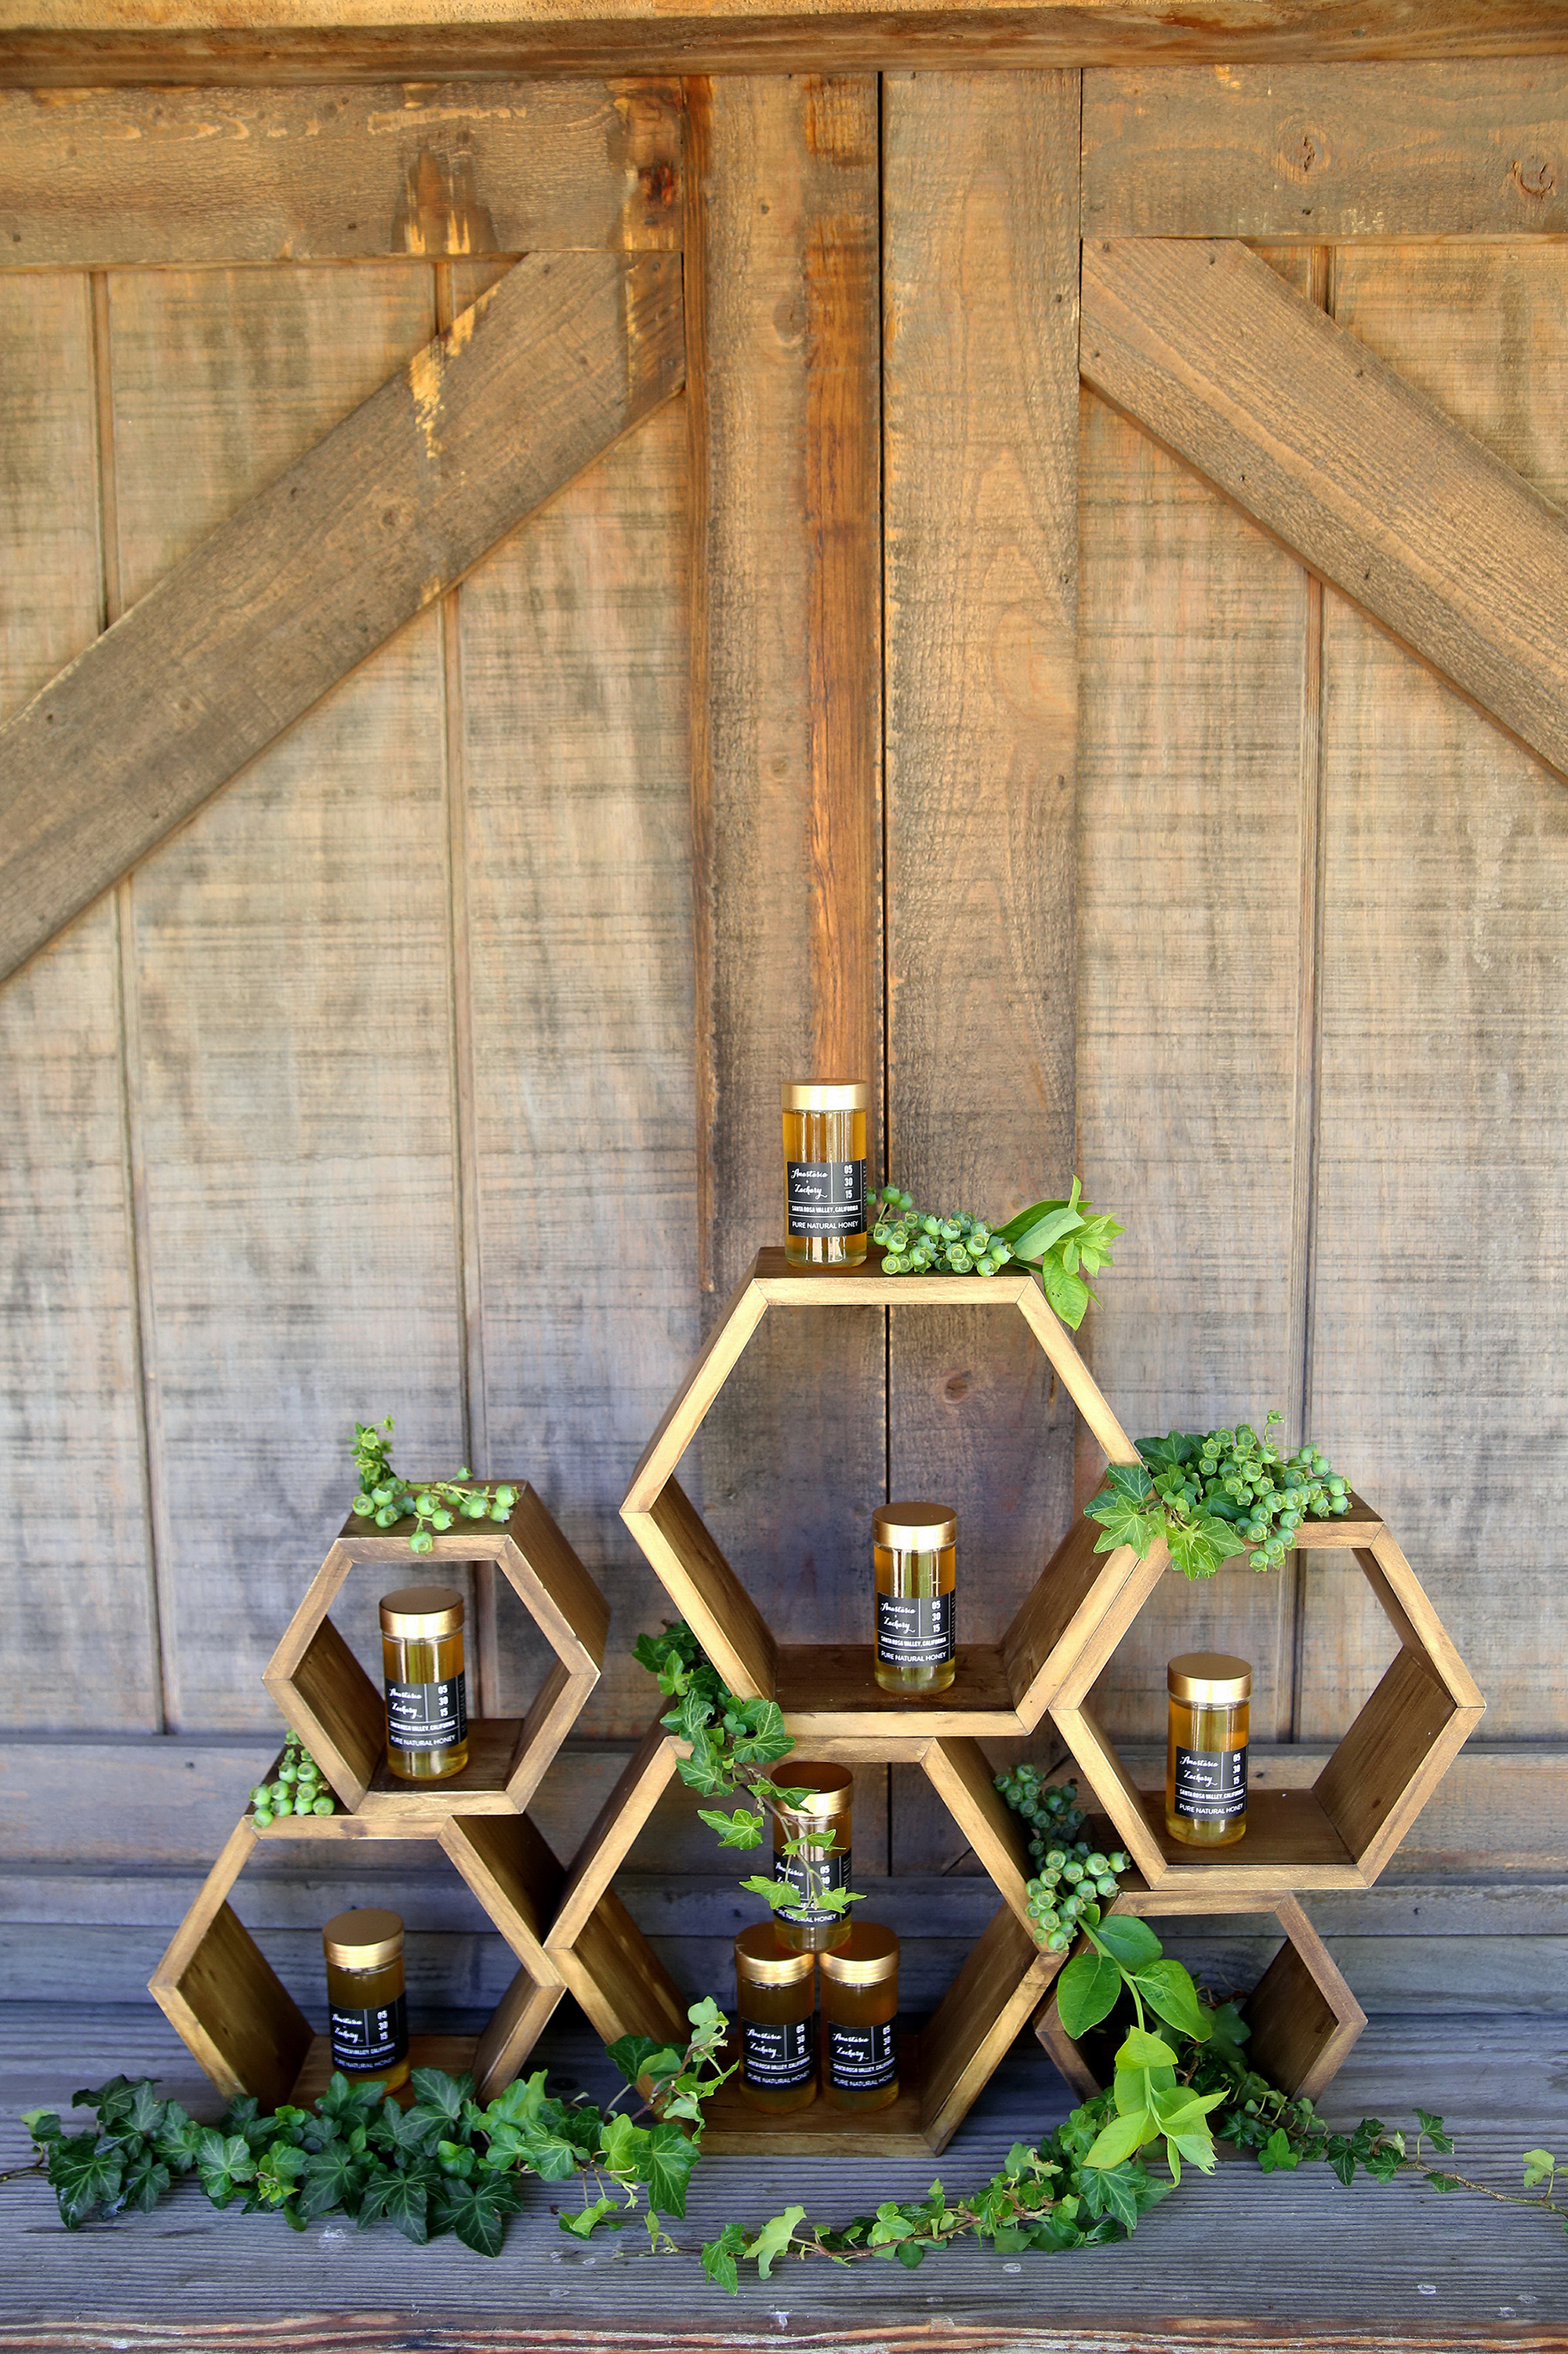 Honeycomb Wedding Inspiration, Honeycomb Shaped Favor Shelf with Honey Favors